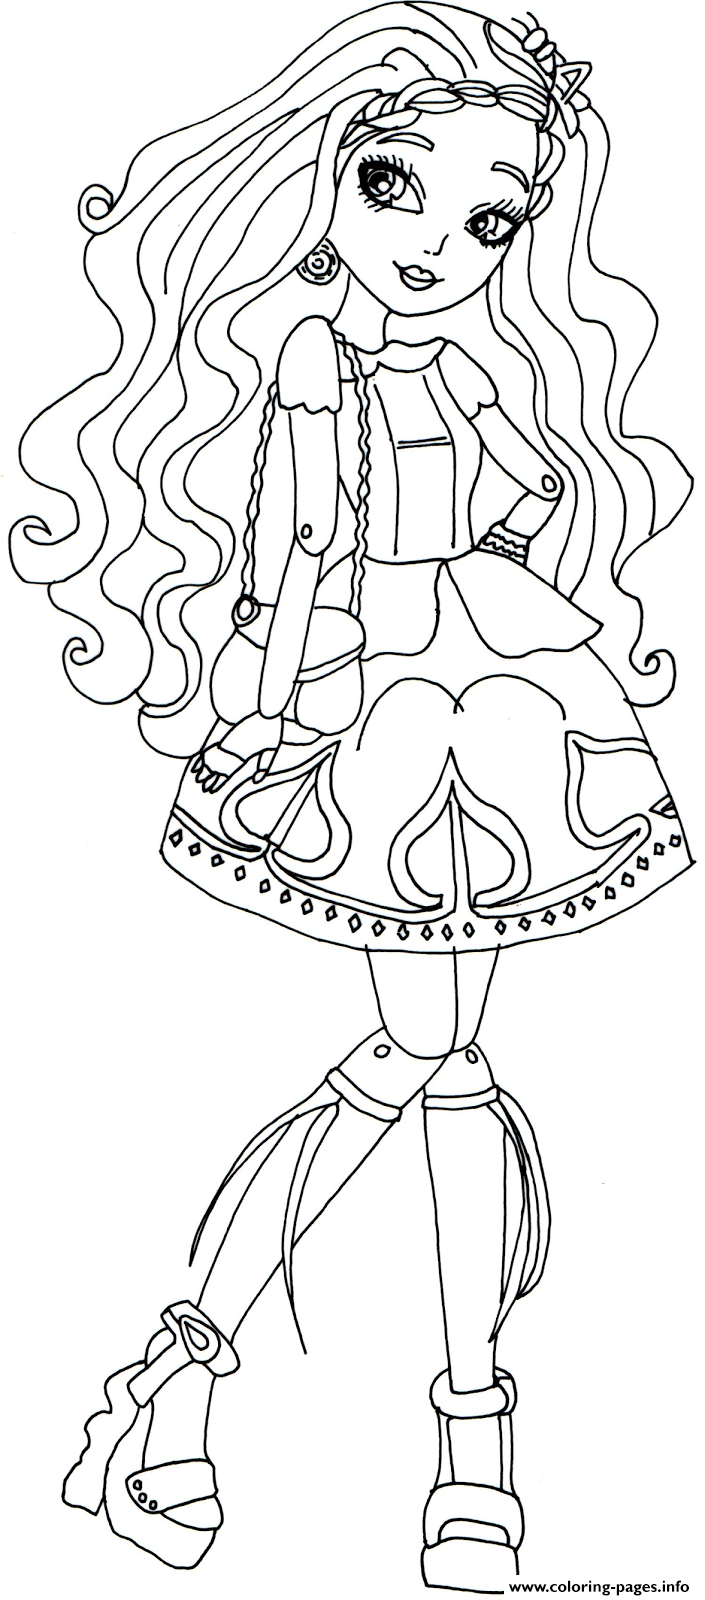 ever after high cedar wood coloring pages - Ever After Coloring Pages